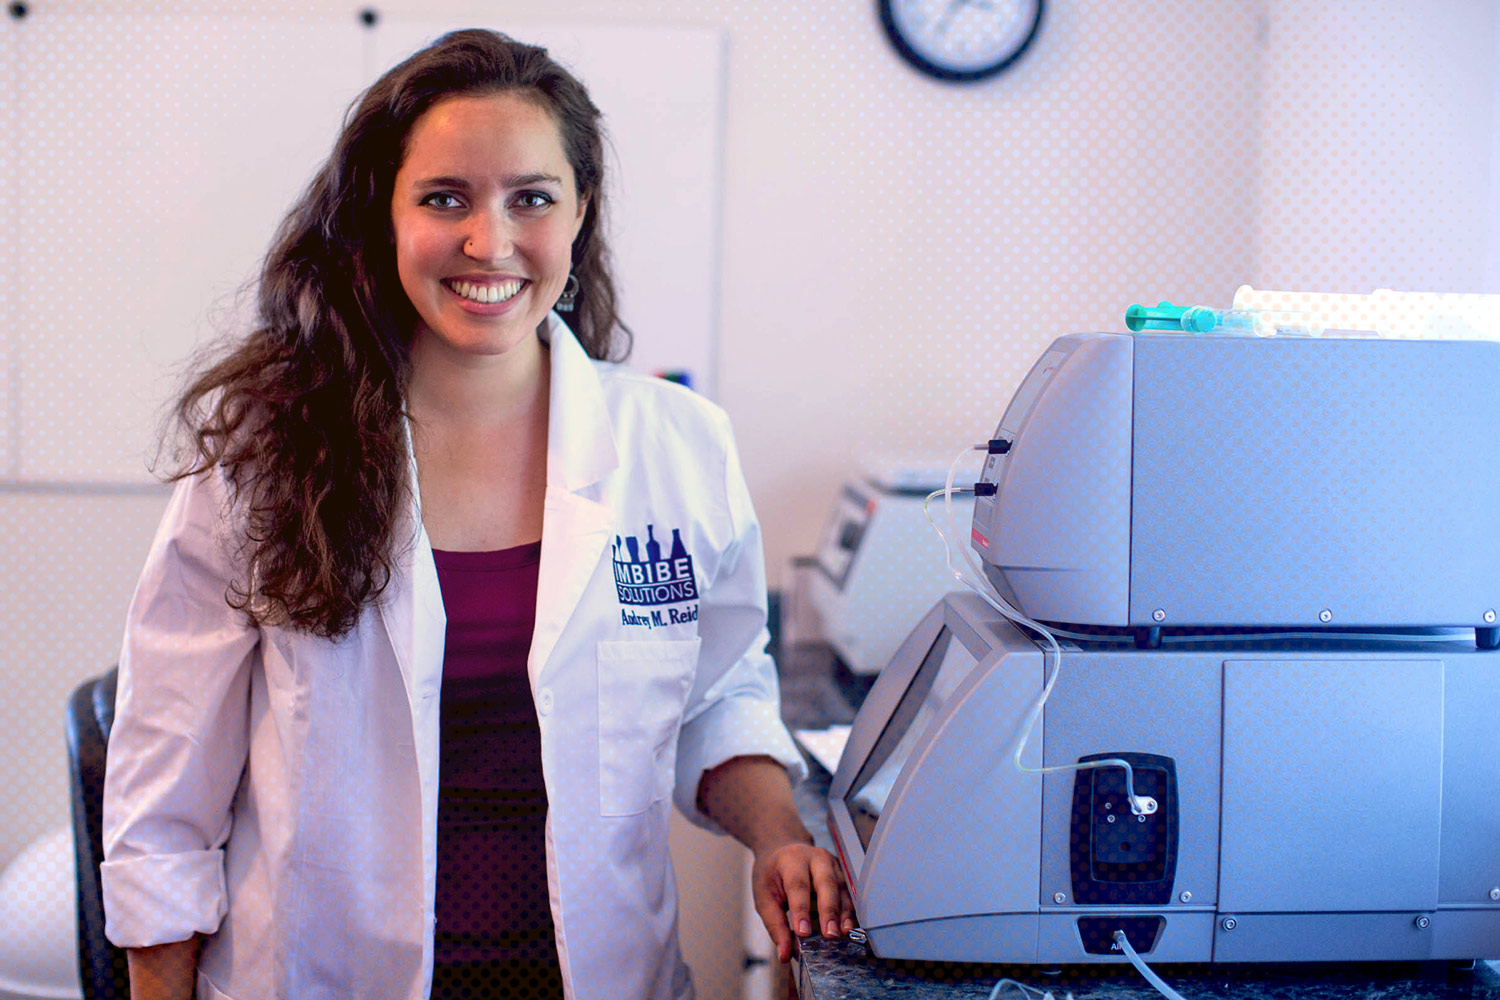 UVA's i.Lab incubator has given a boost to Audrey Reid, who in turn is supporting the area's surging adult beverage-making industry